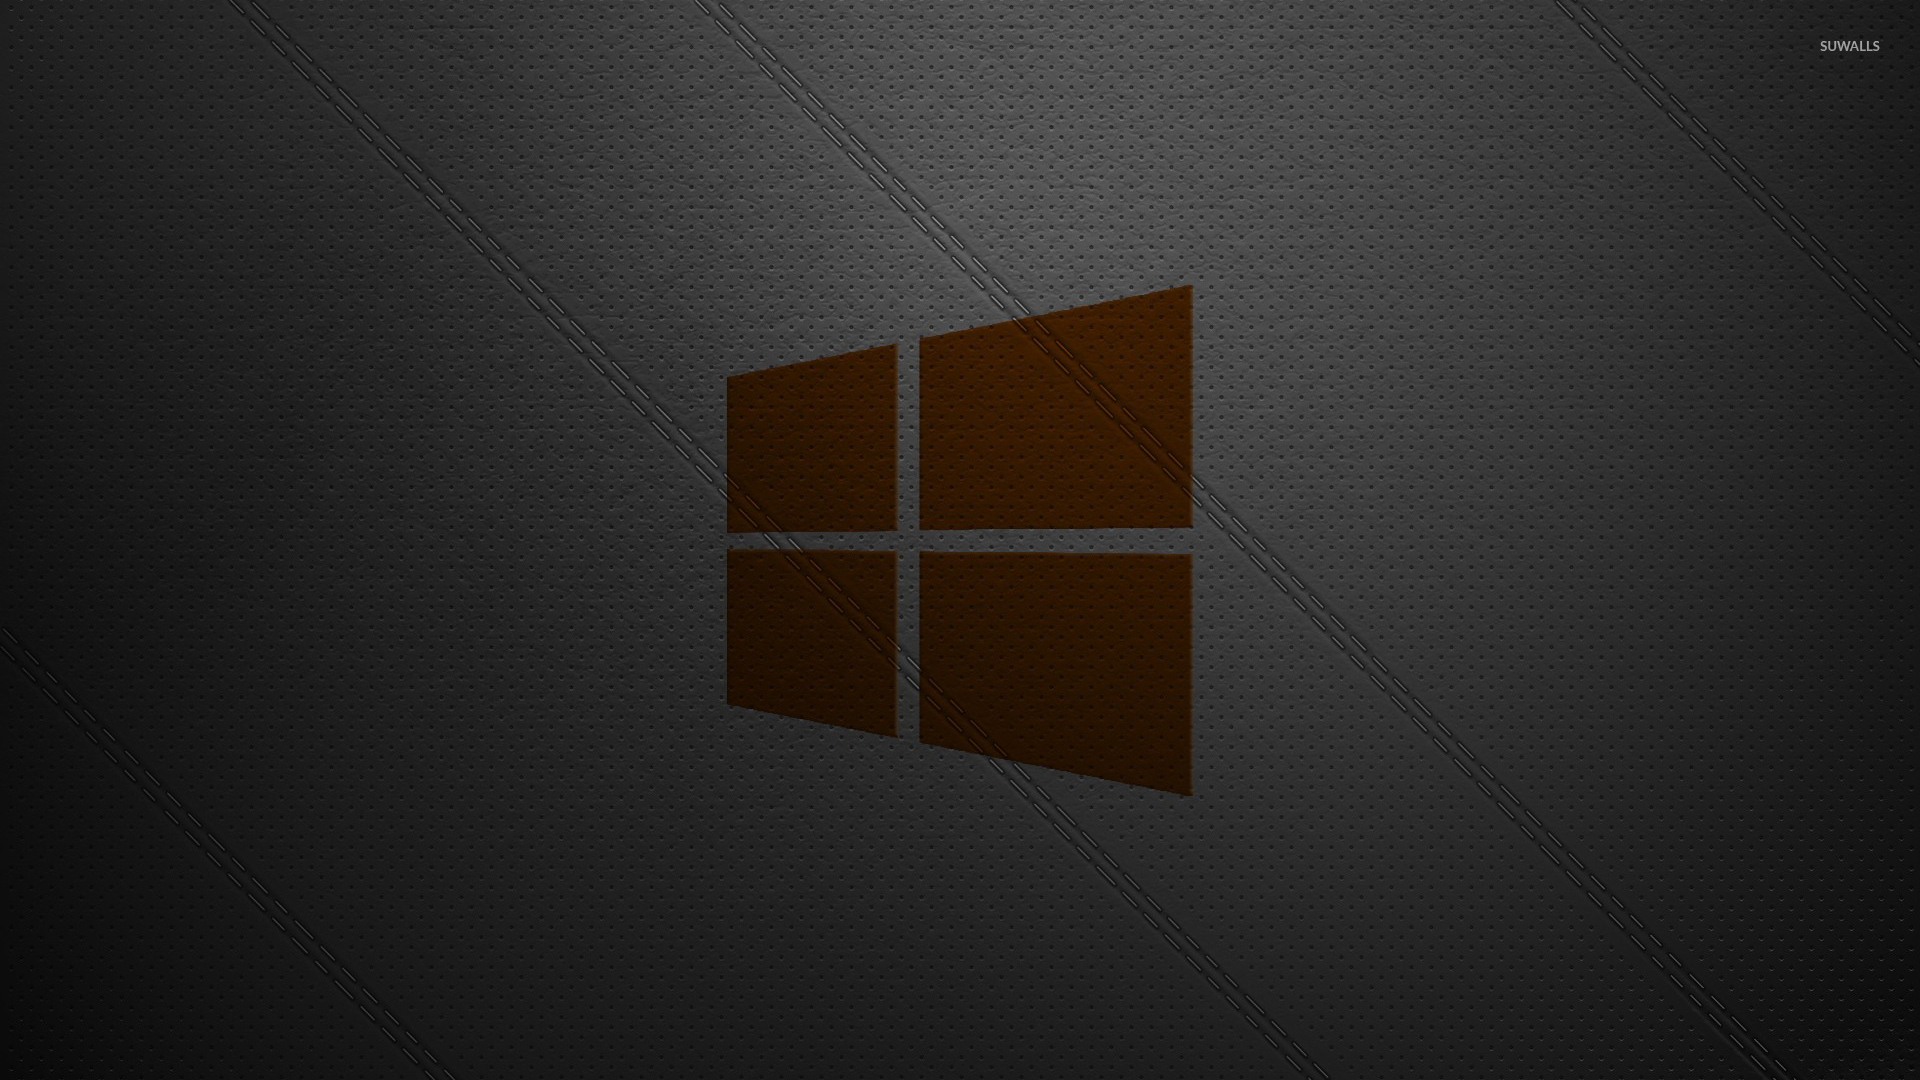 44 2k Wallpaper Windows 10 On Wallpapersafari